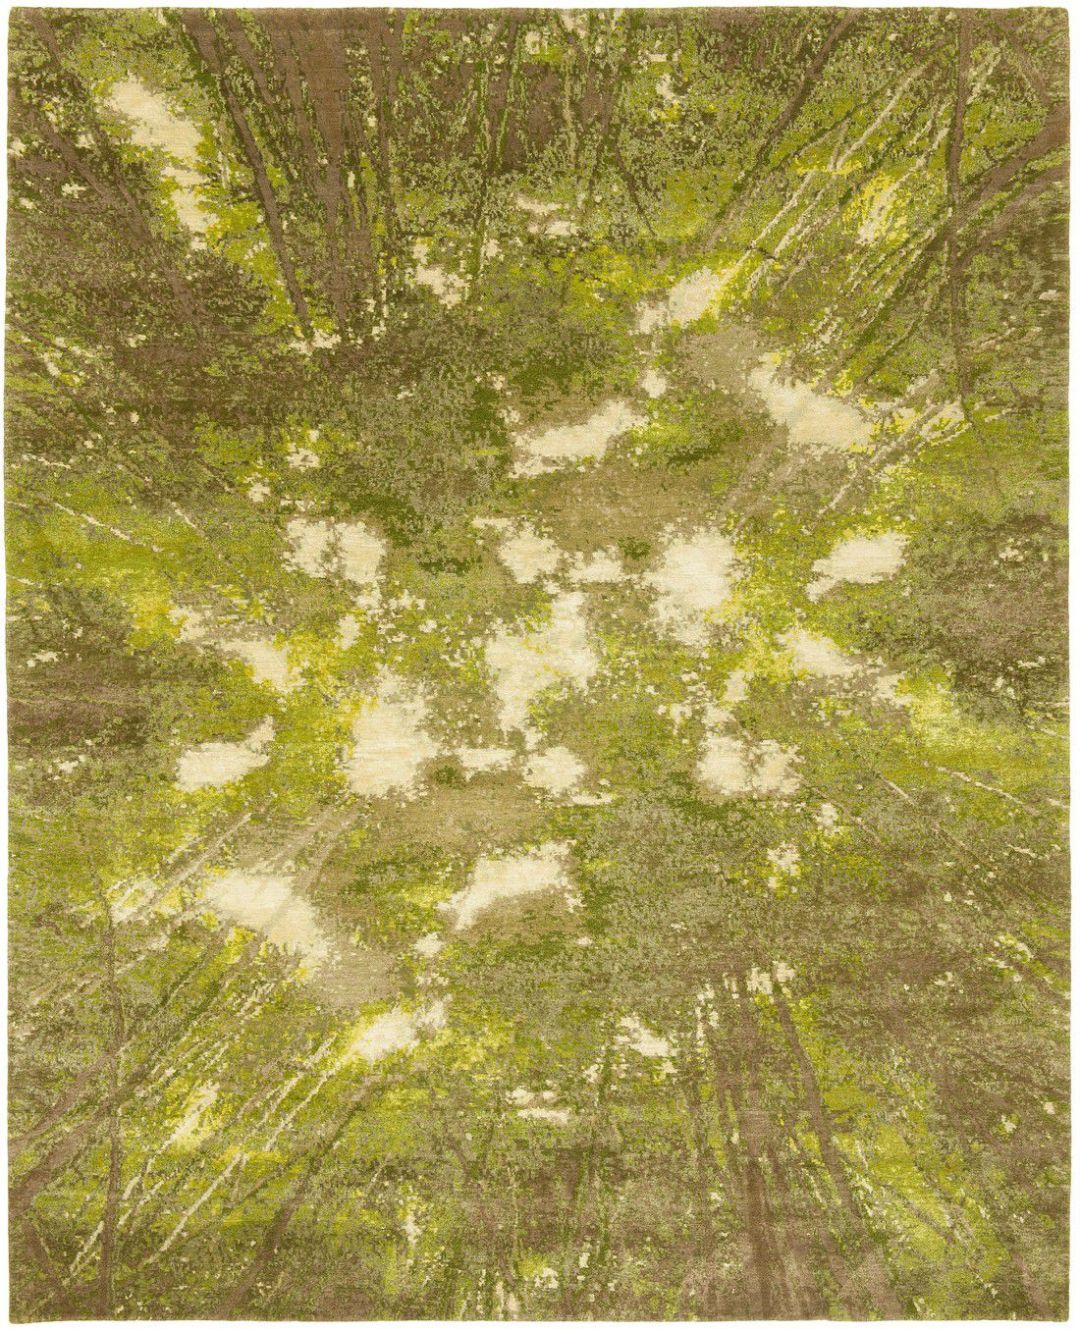 Jungle by Jan Kath - Tropical rugs - Transform your home into a tropical paradise | Aliz's Wonderland